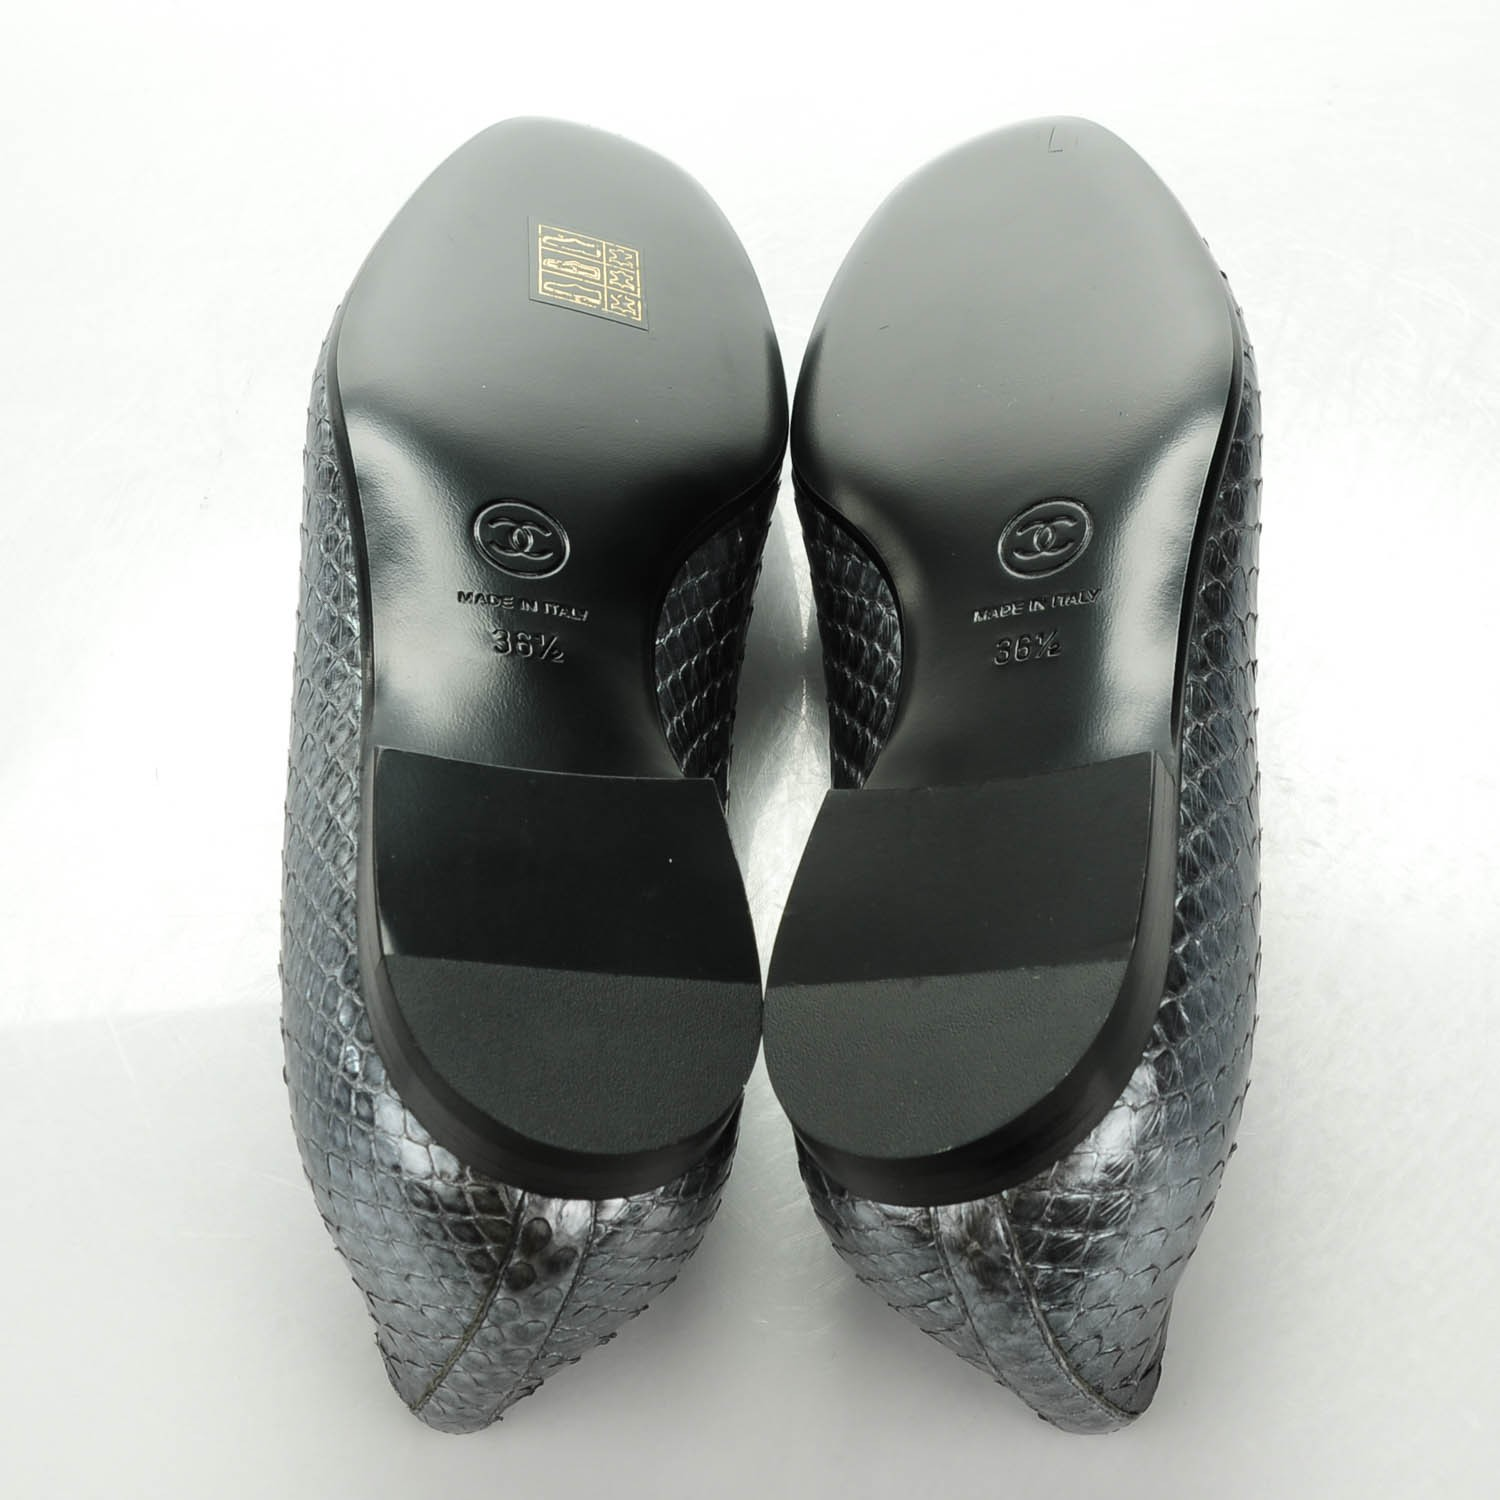 CHANEL Python CC Mocassin Loafers 36 5 Dark Grey 141256